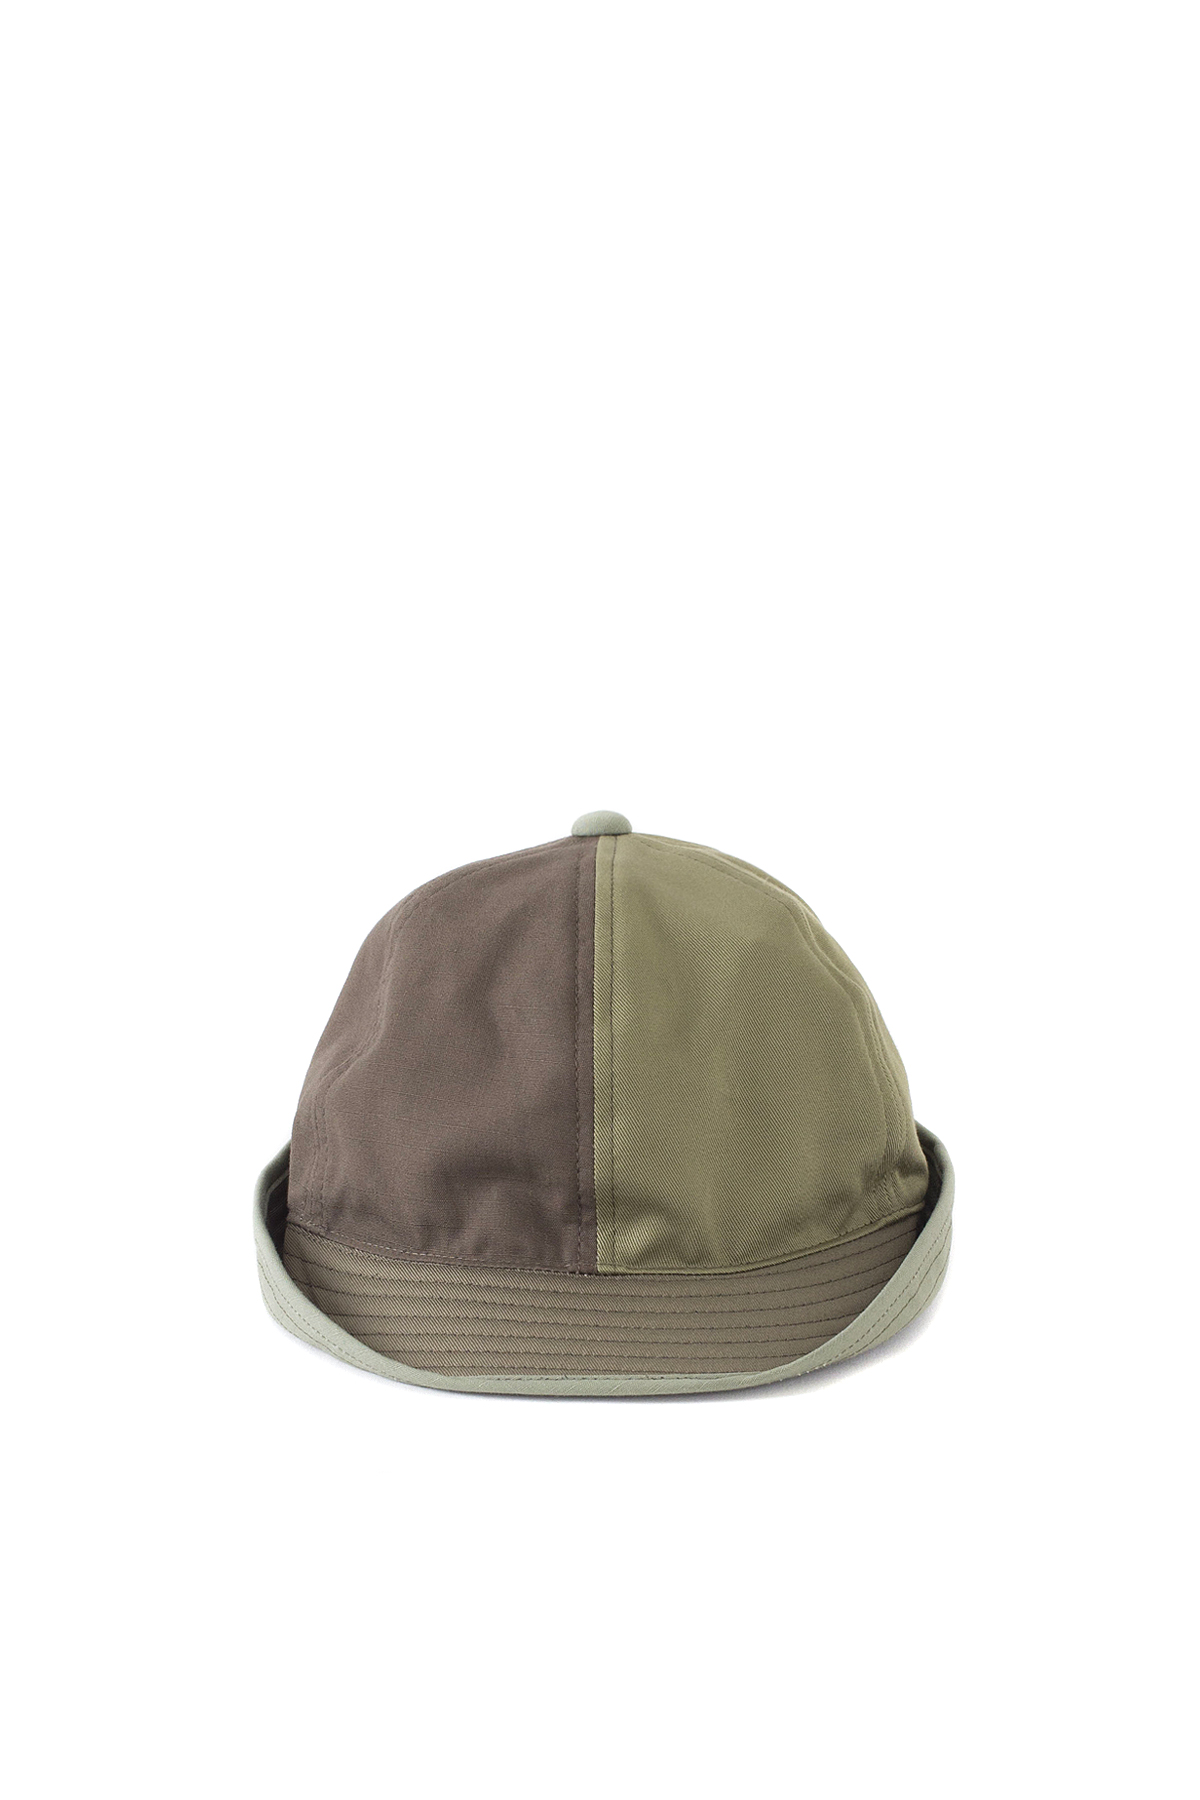 Infielder Design : Crazy Hunt Cap (Green)